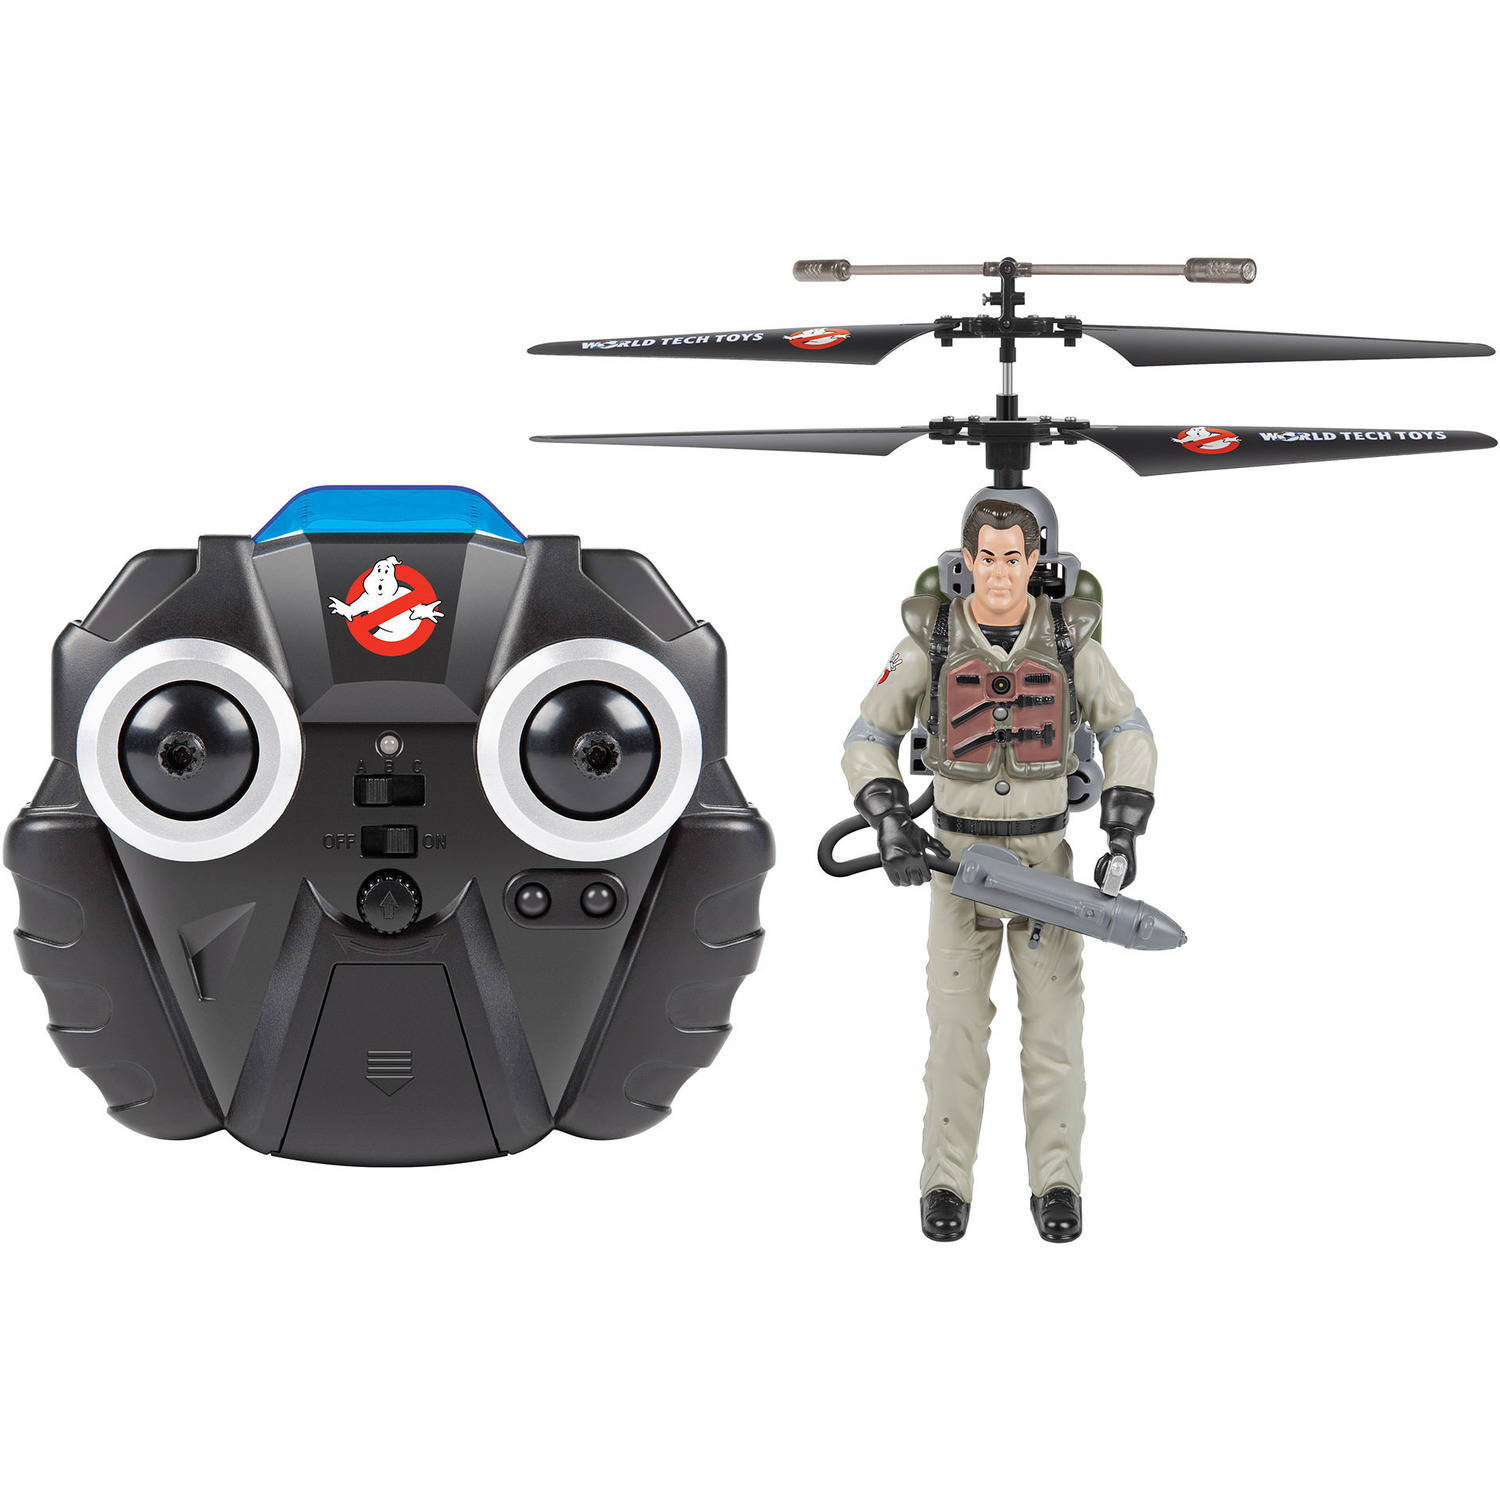 2-Channel Ray Ghostbusters IR Gyro Helicopter by World Tech Toys